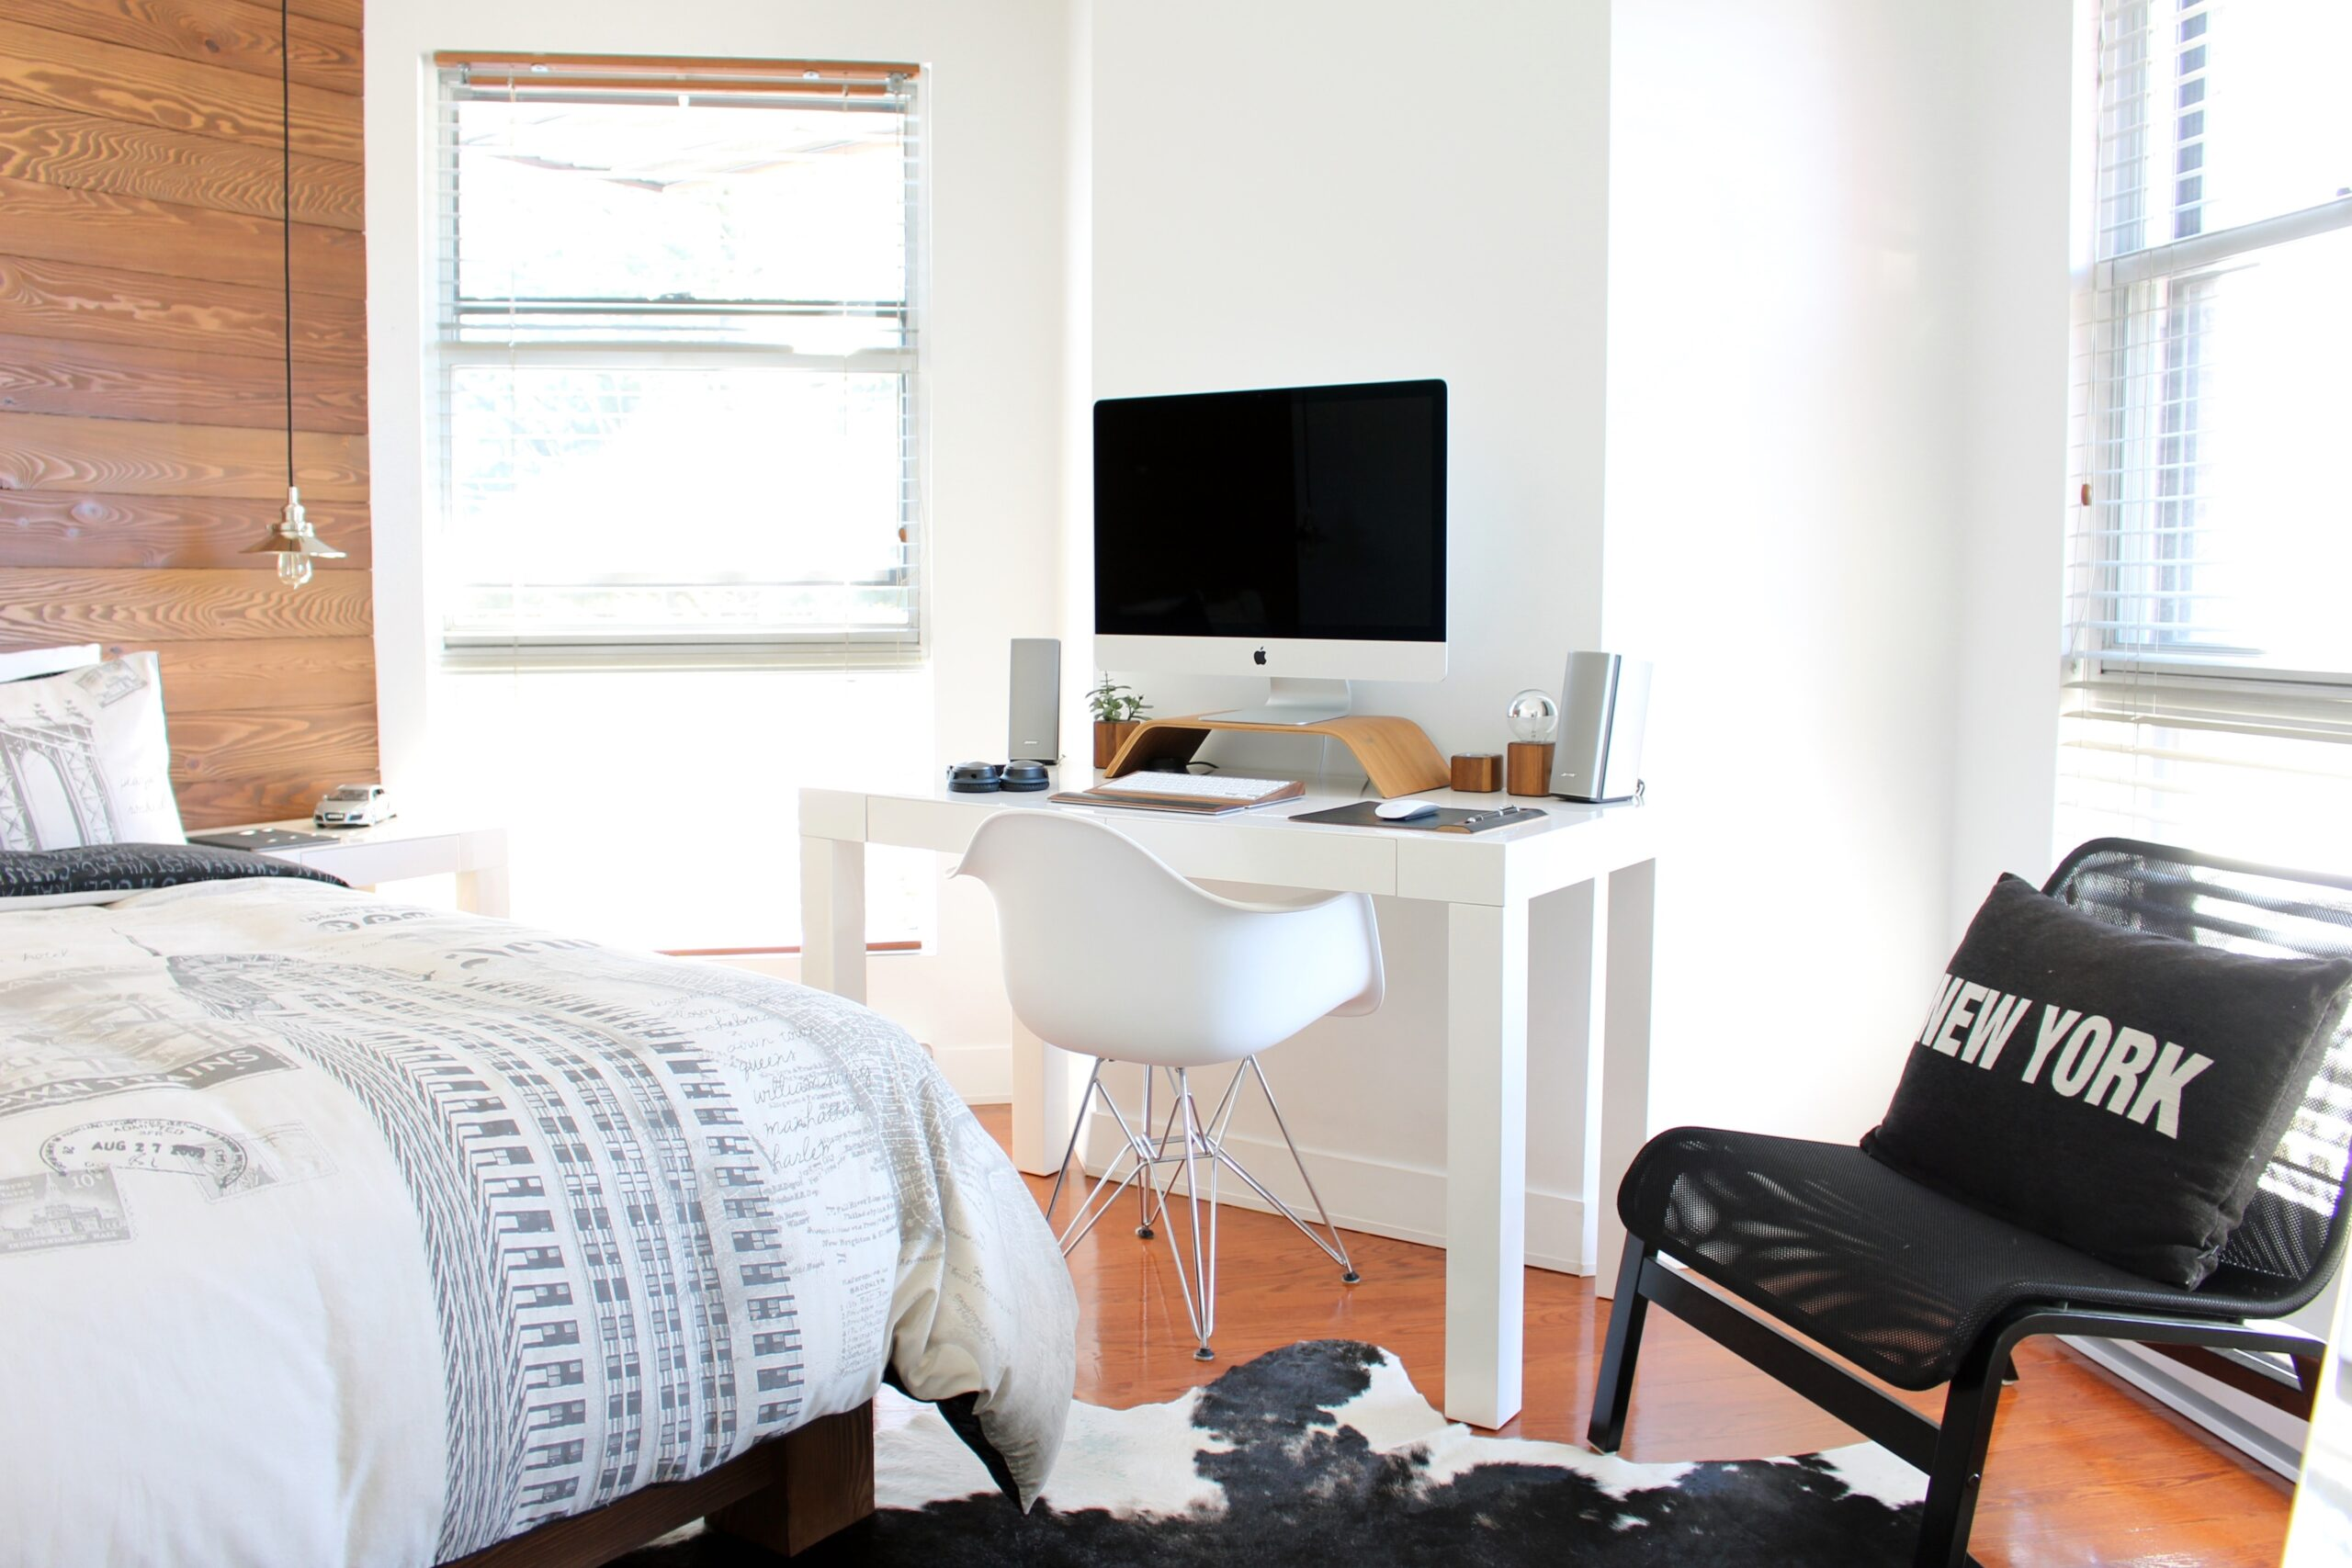 dorm room with two windows